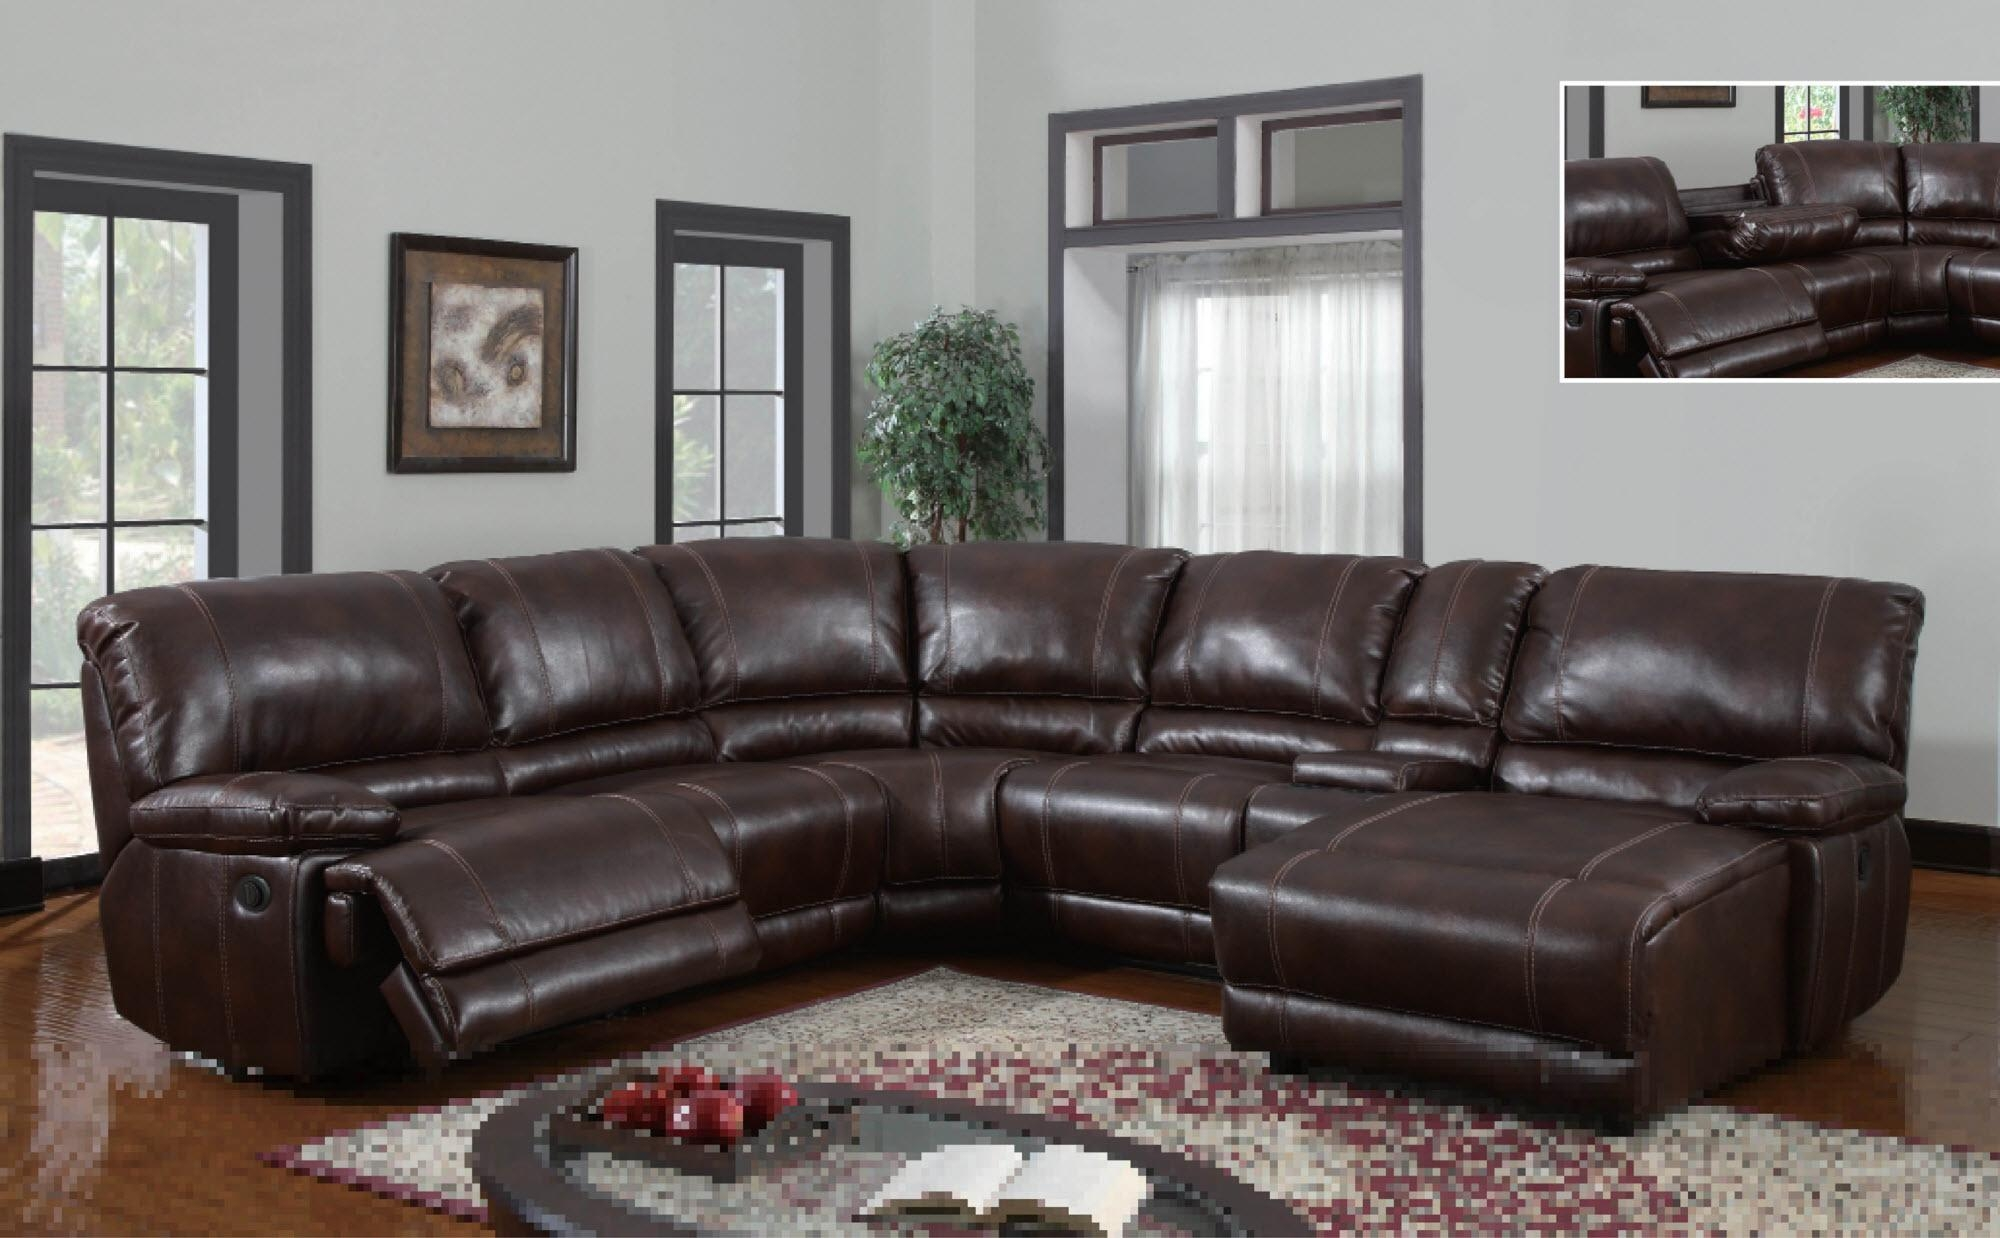 Sectional Sofa With Chaise Recliner And Sleeper | Tehranmix Decoration Regarding Sleeper Recliner Sectional (View 9 of 20)